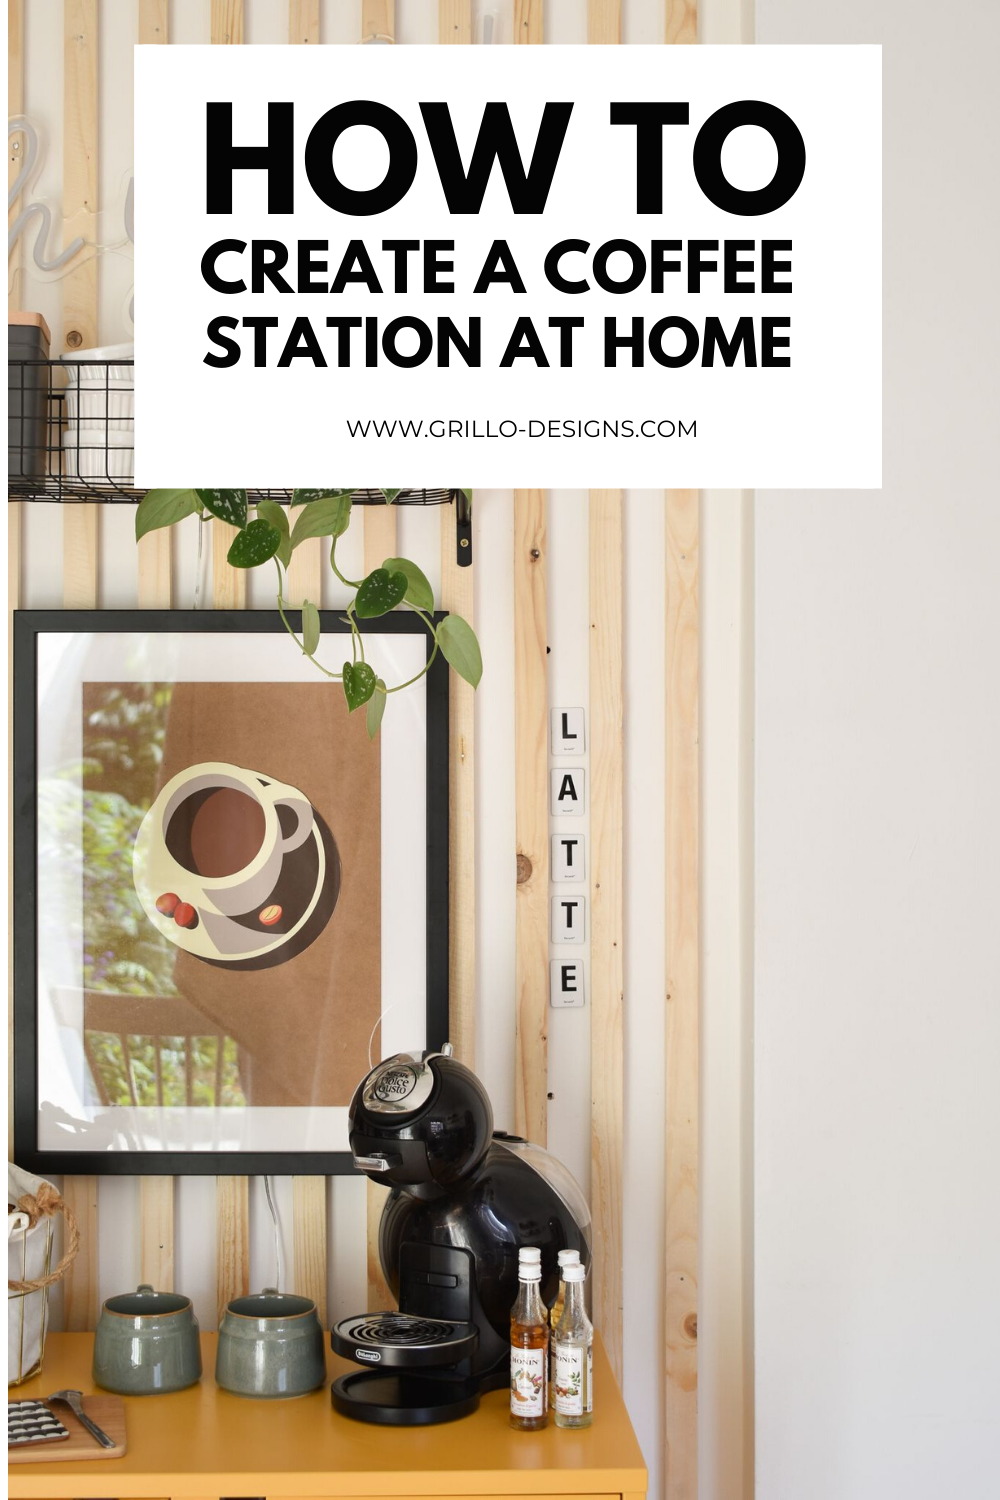 How to create a diy coffee station at home pinterest graphic